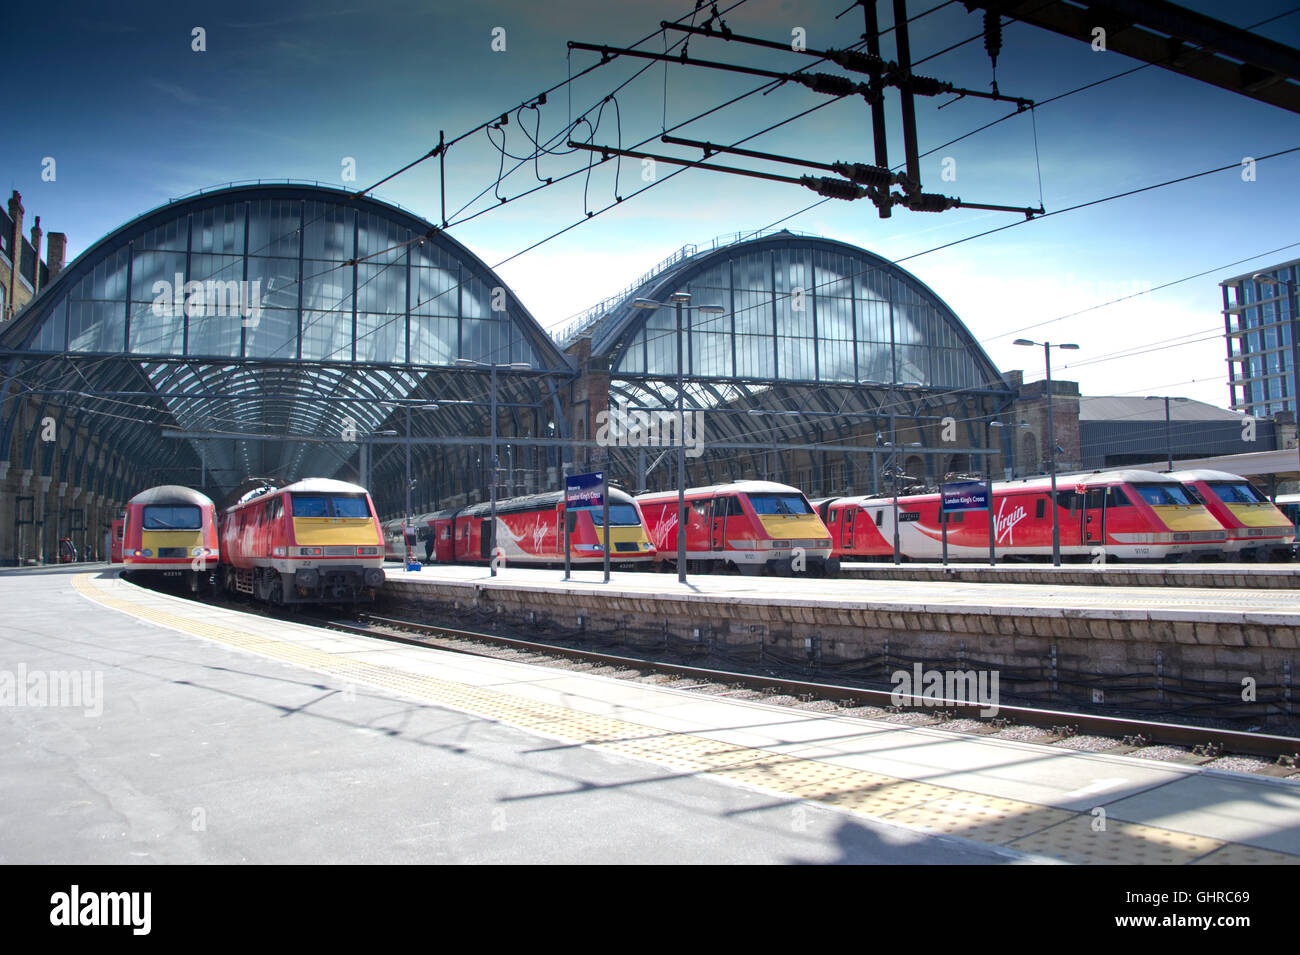 A veritable line up of Virgin Trains East Coast power at London Kings Cross on 20 April 2016. - Stock Image